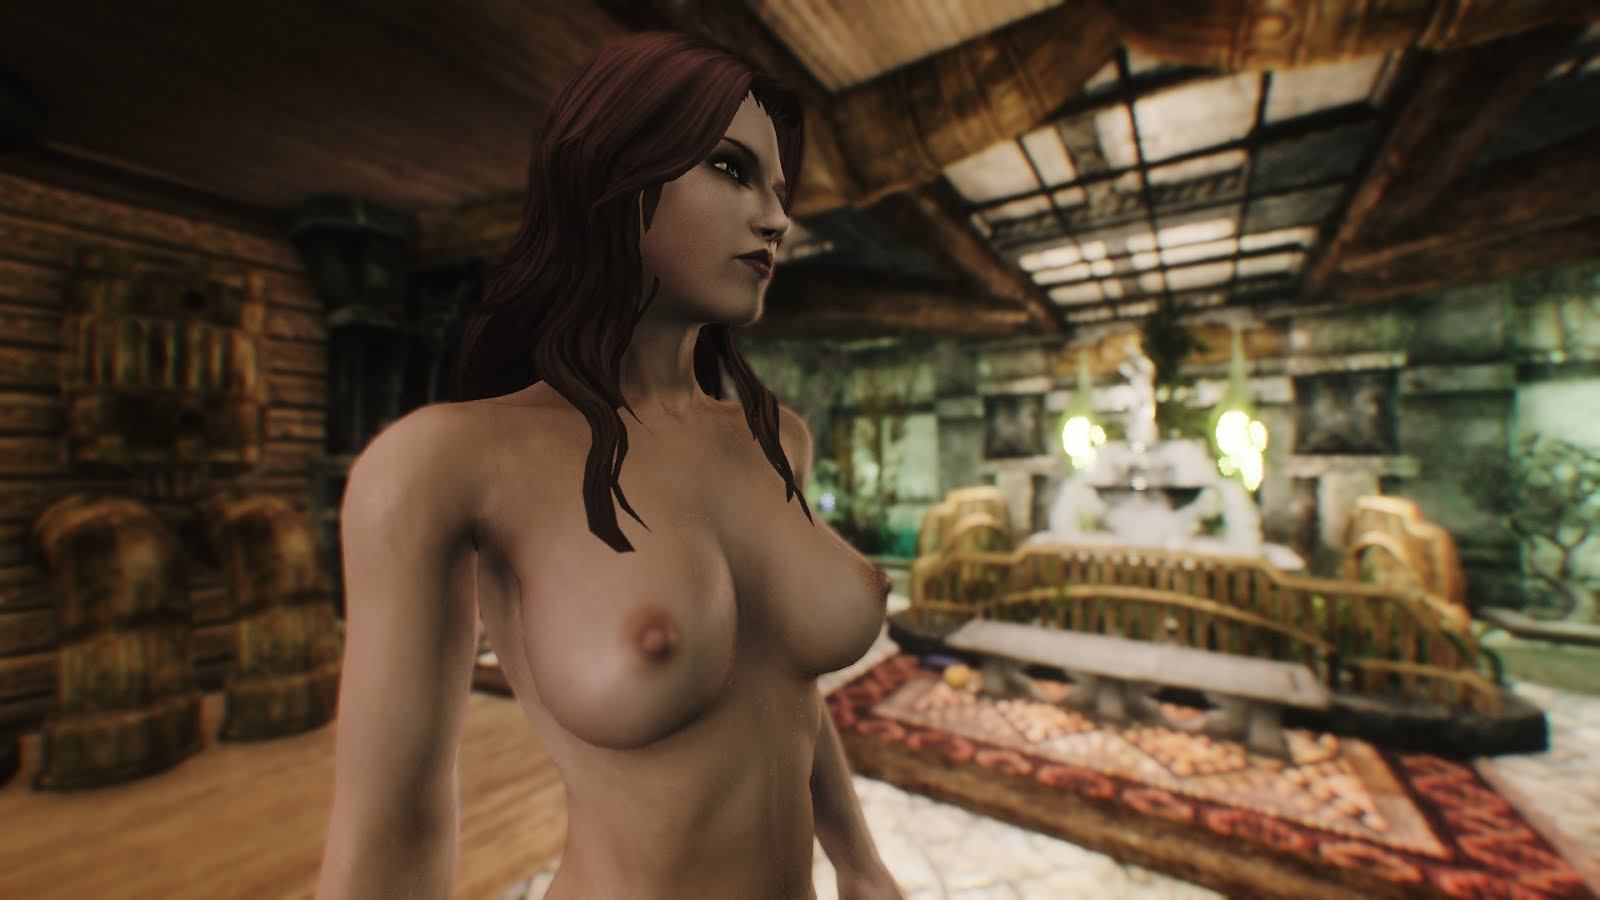 Skyrim nude female download pornos video